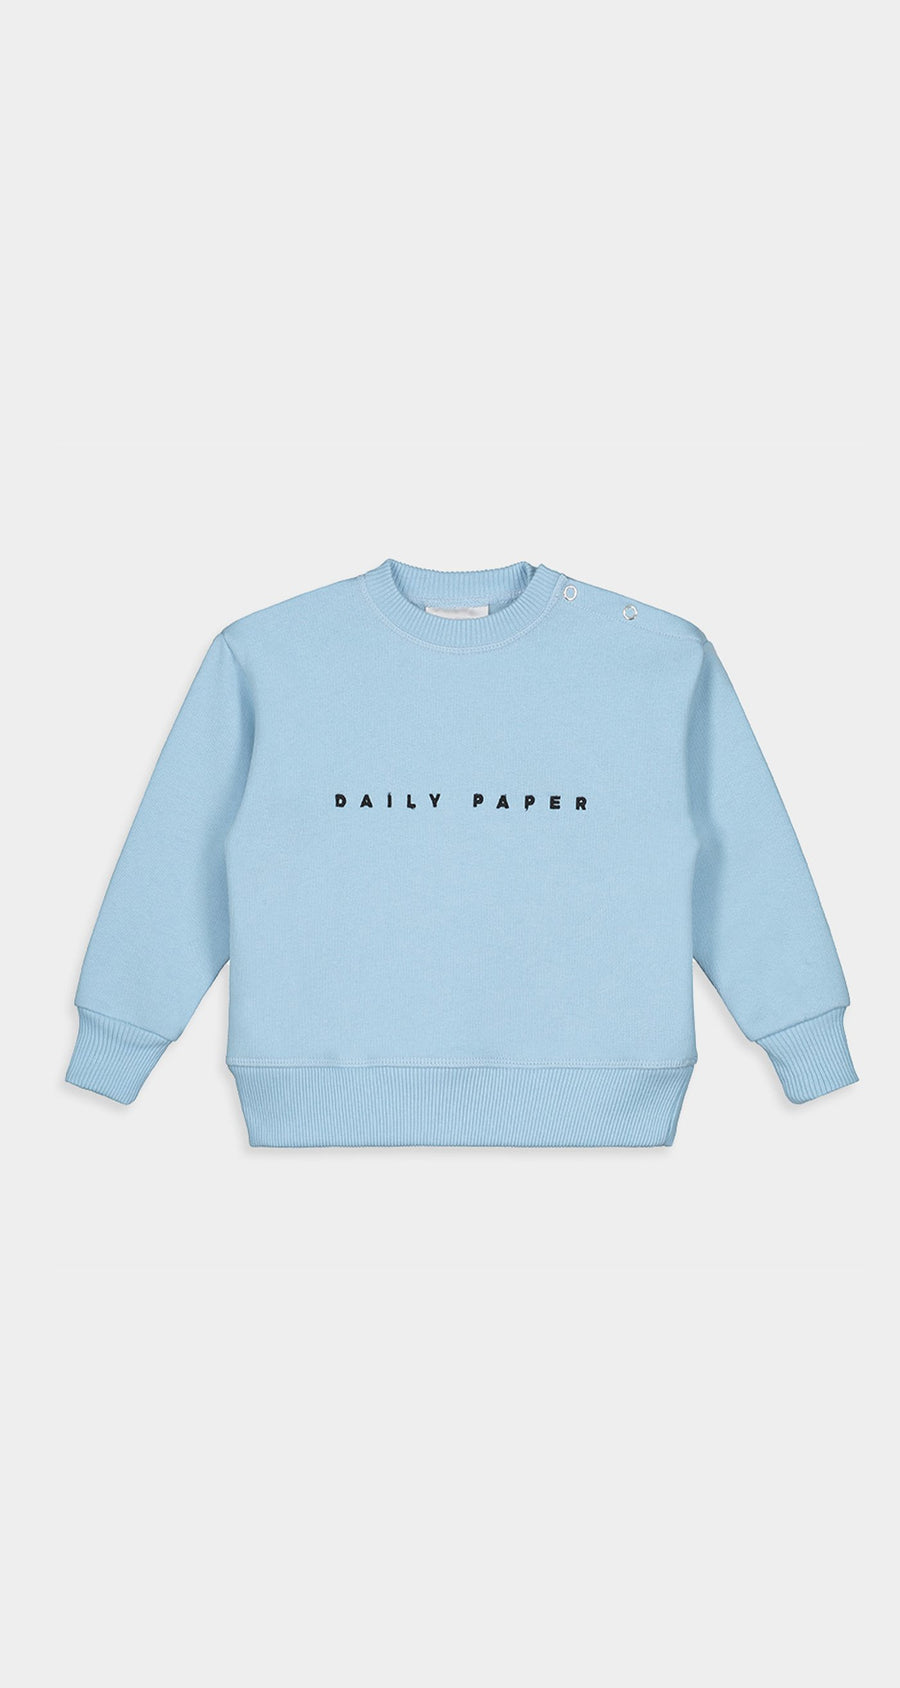 Daily Paper - Blue Kids Alias Sweater Front